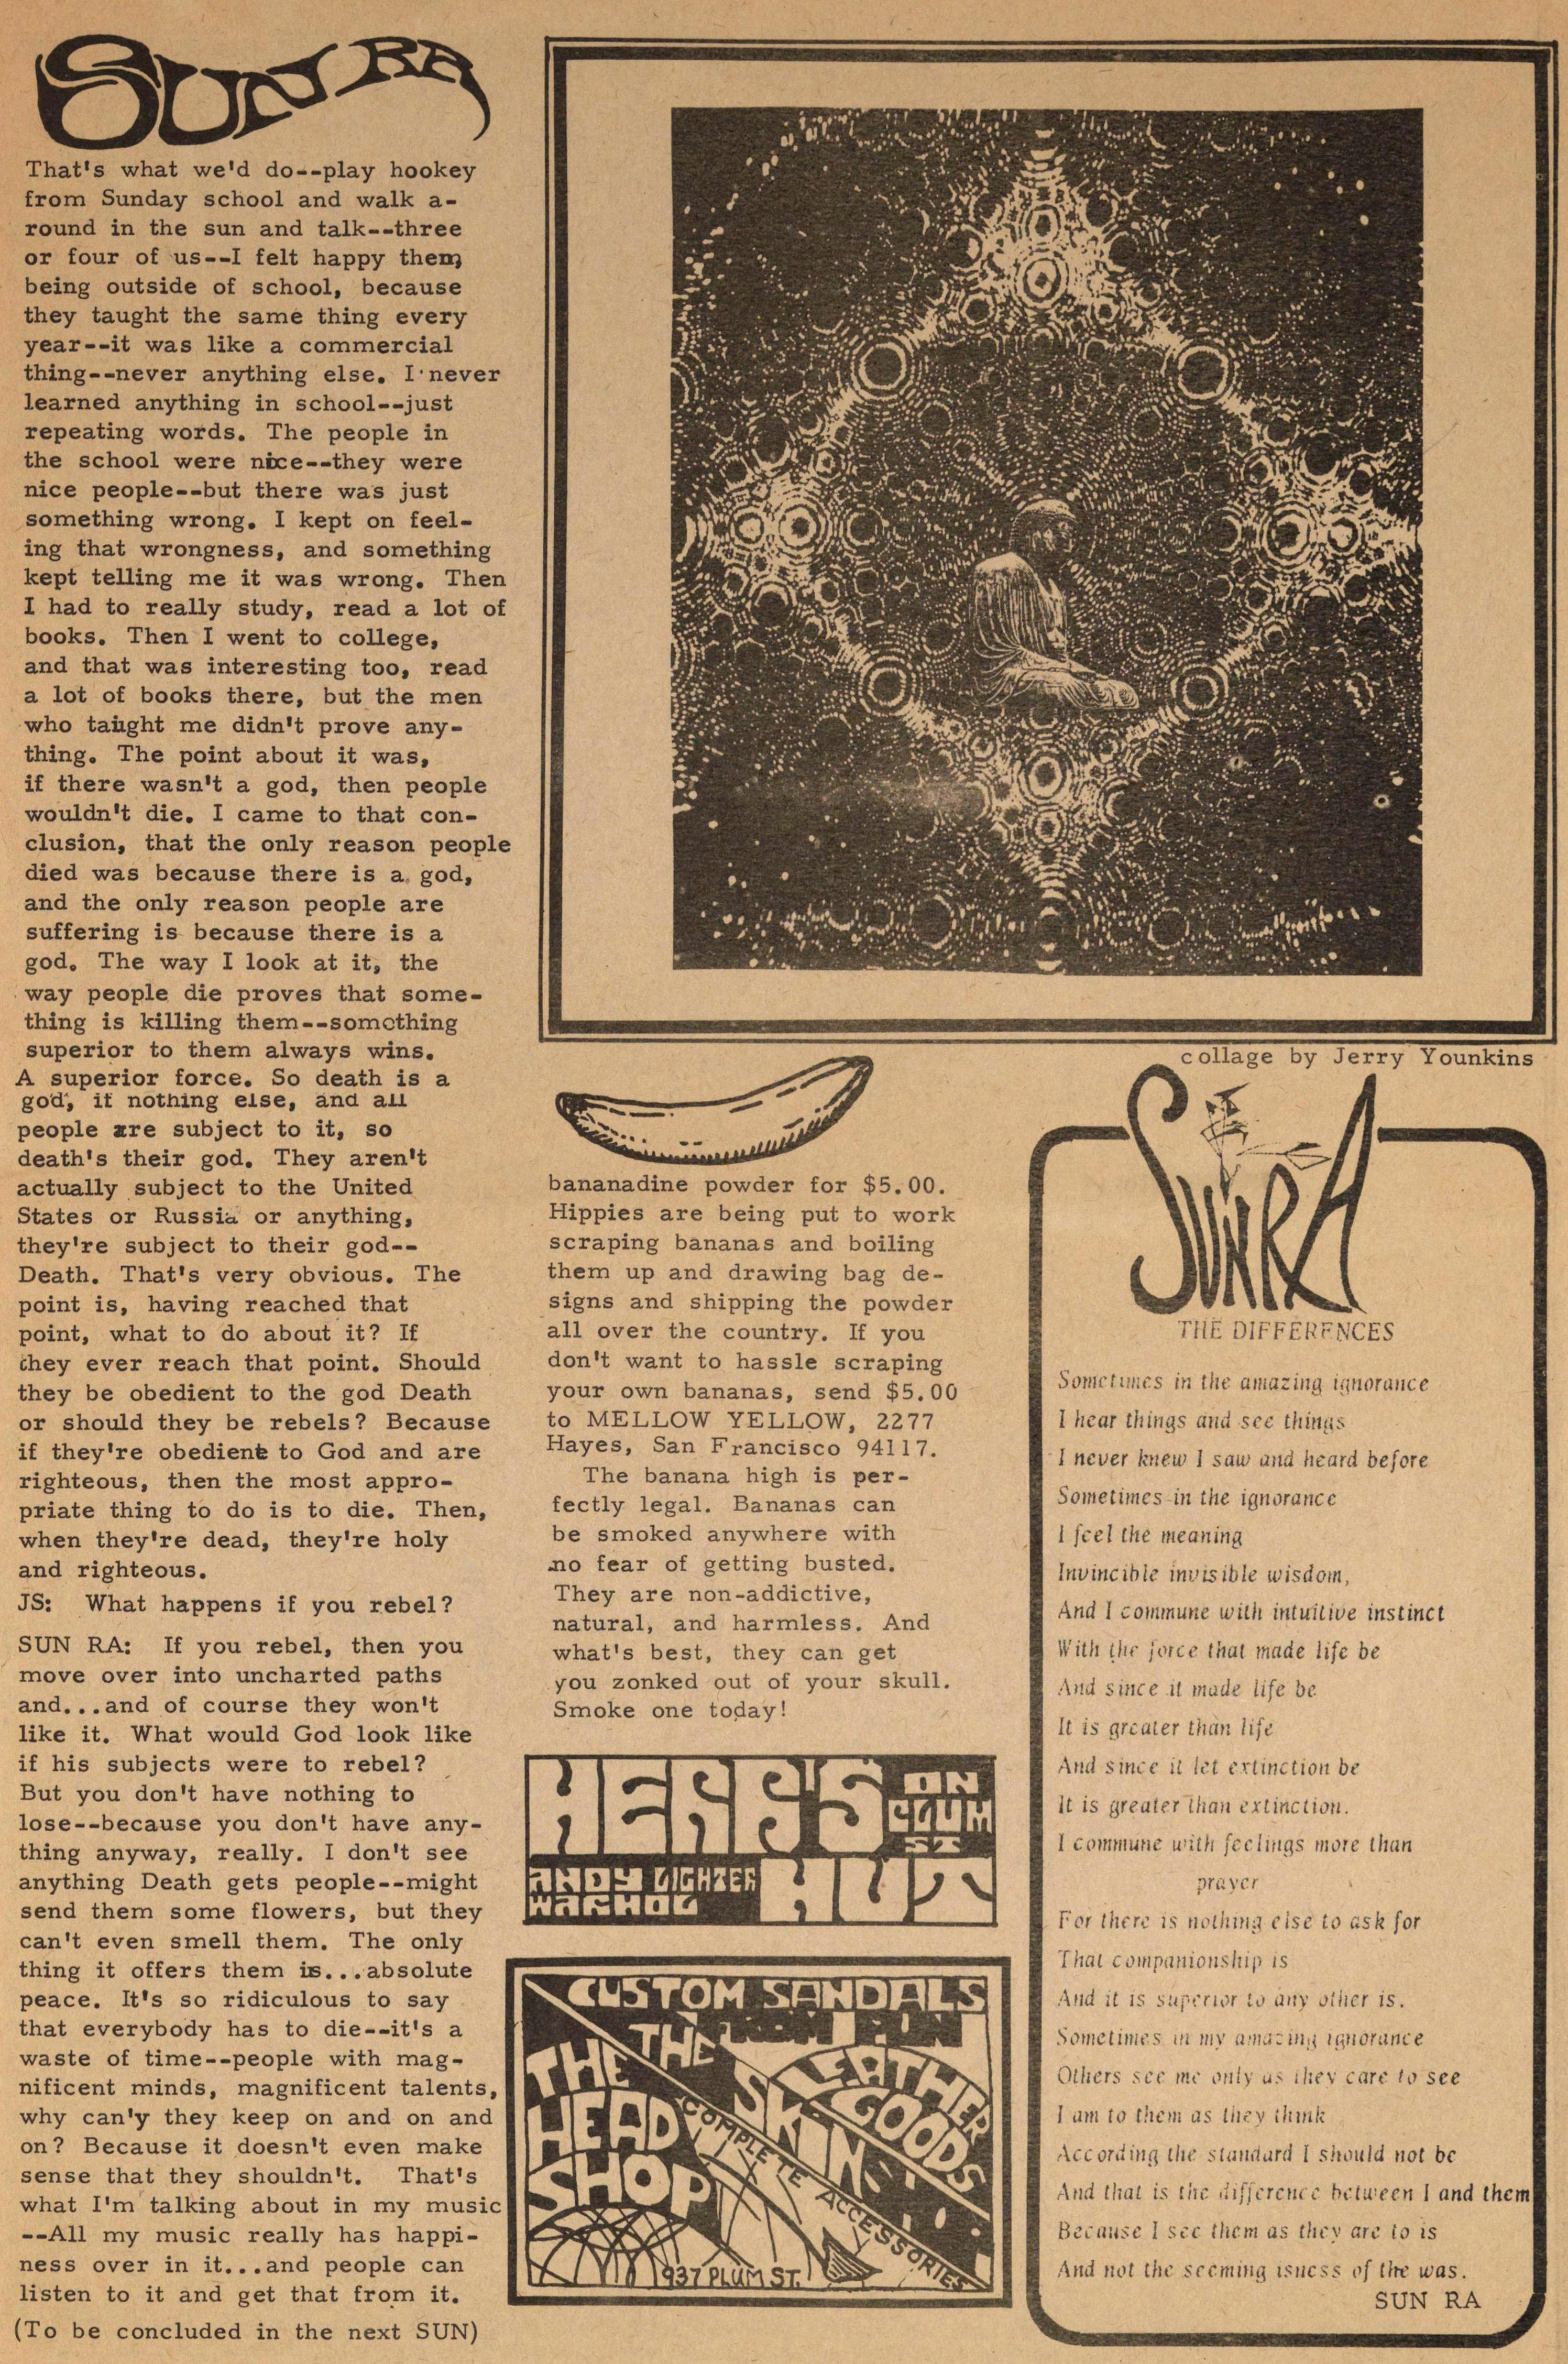 Sun Ra: An Interview: Part One: Collision of the Suns image